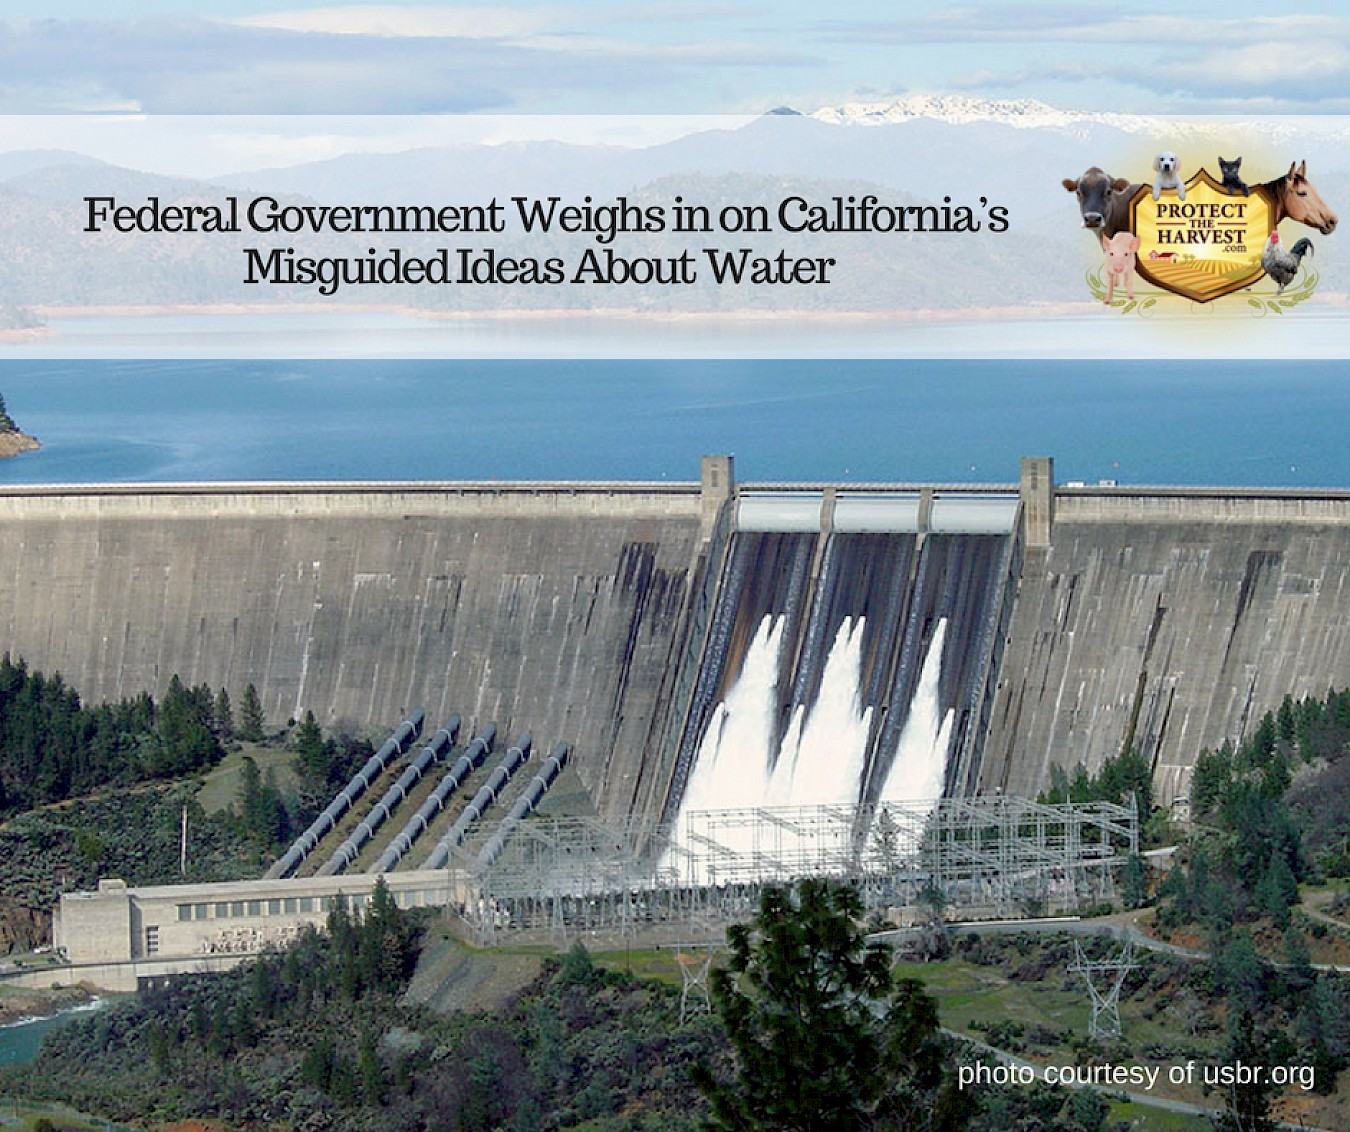 Federal Government Weighs In On California's Misguided Ideas About Water